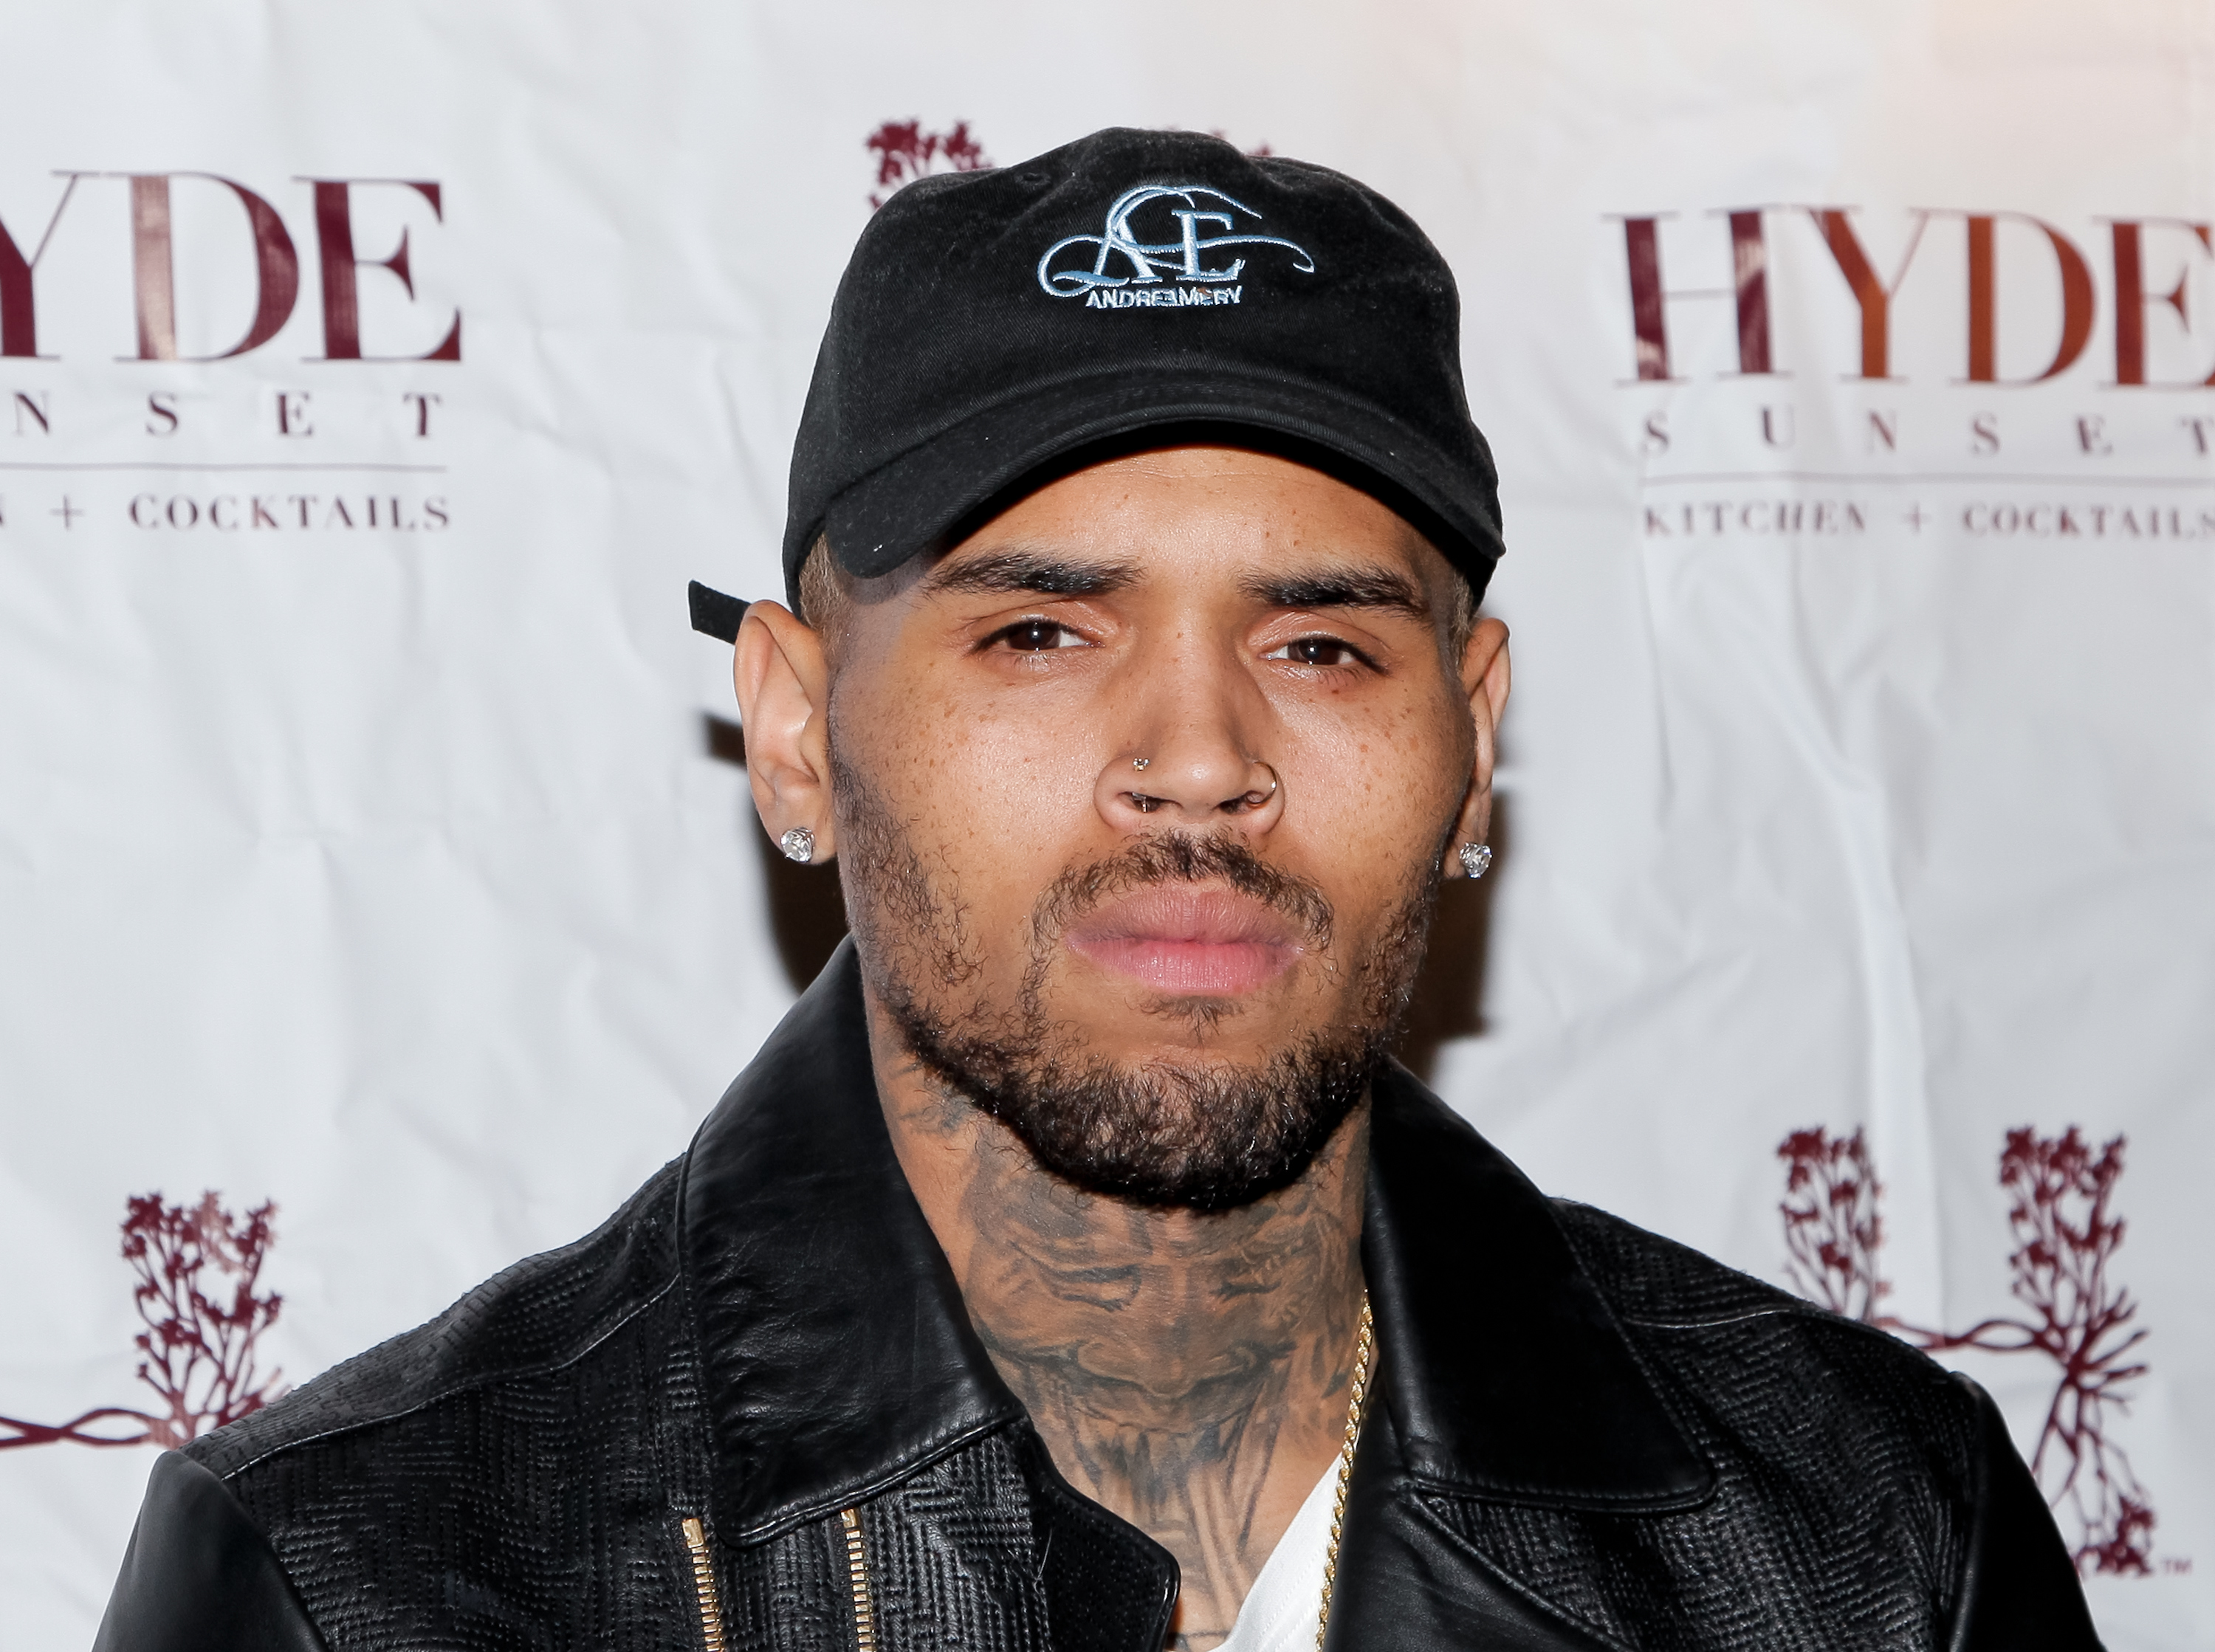 Chris Brown attends  The Lost Warhols  Collection exhibit at HYDE Sunset: Kitchen + Cocktails on Nov. 4, 2015, in West Hollywood, Calif.